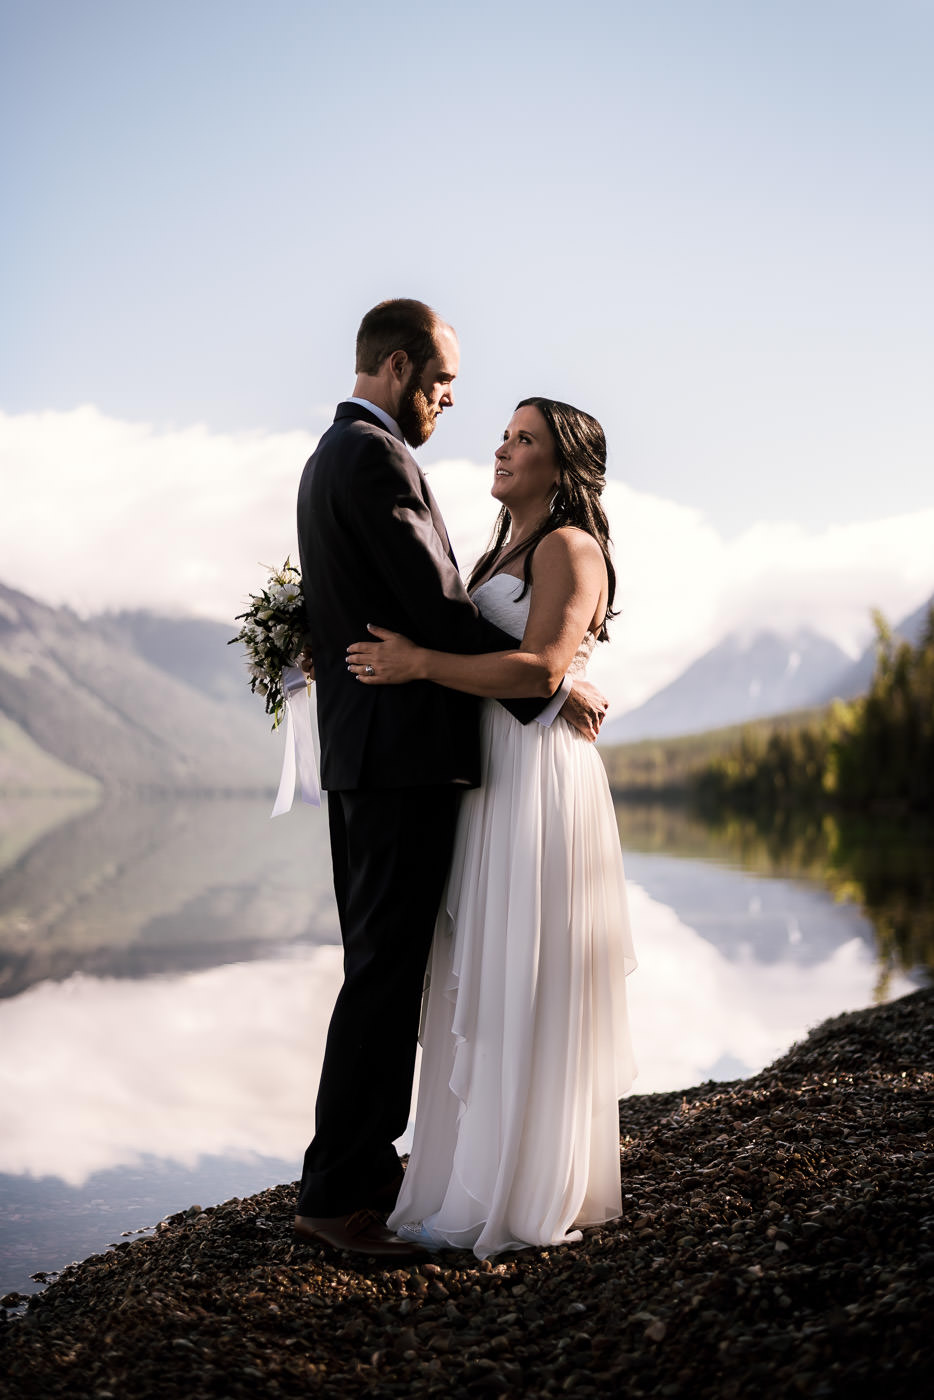 Romantic adventure session with a beautiful couple.